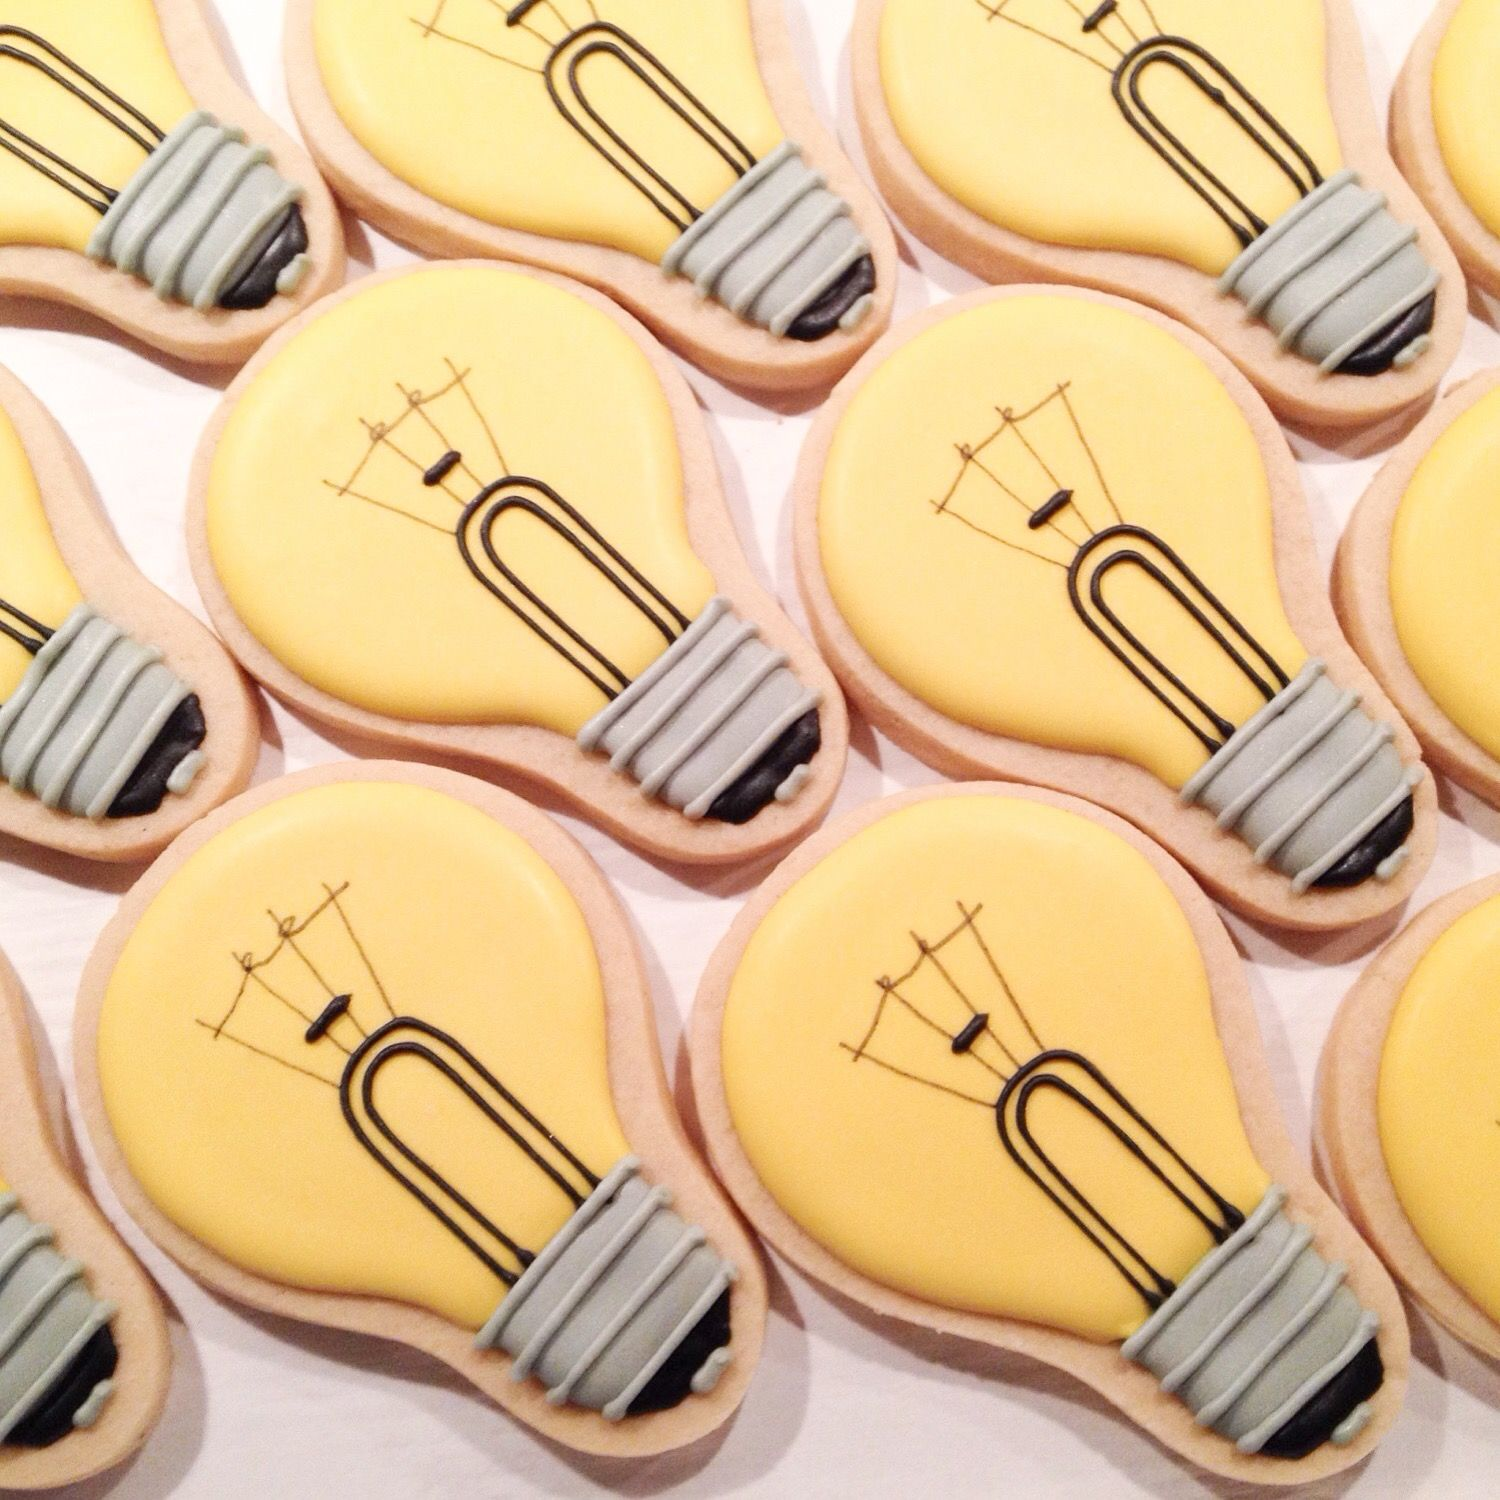 Lightbulb Cookies Www Thesweetesttiers Com Decorated Cookies In